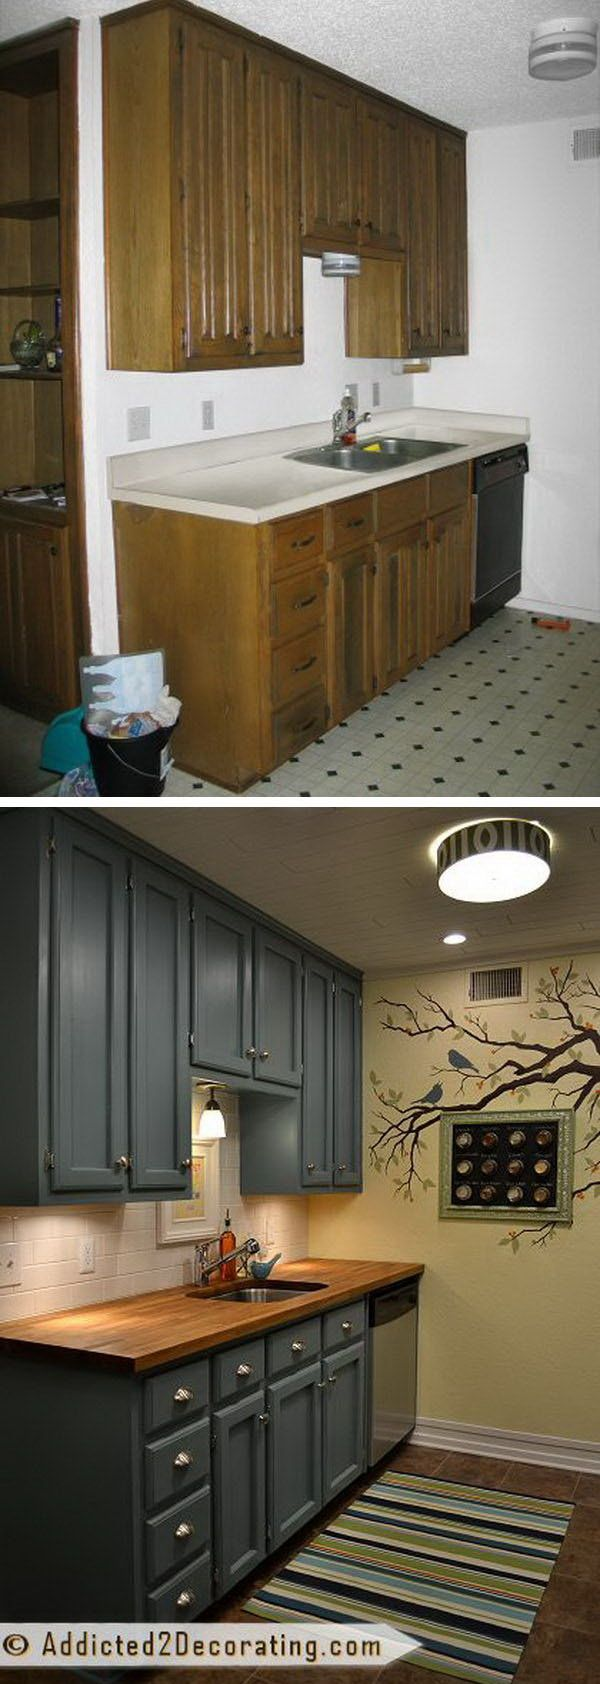 Cheap bathroom remodel before and after - Before And After 25 Budget Friendly Kitchen Makeover Ideas Cheap Bathroom Remodelcheap